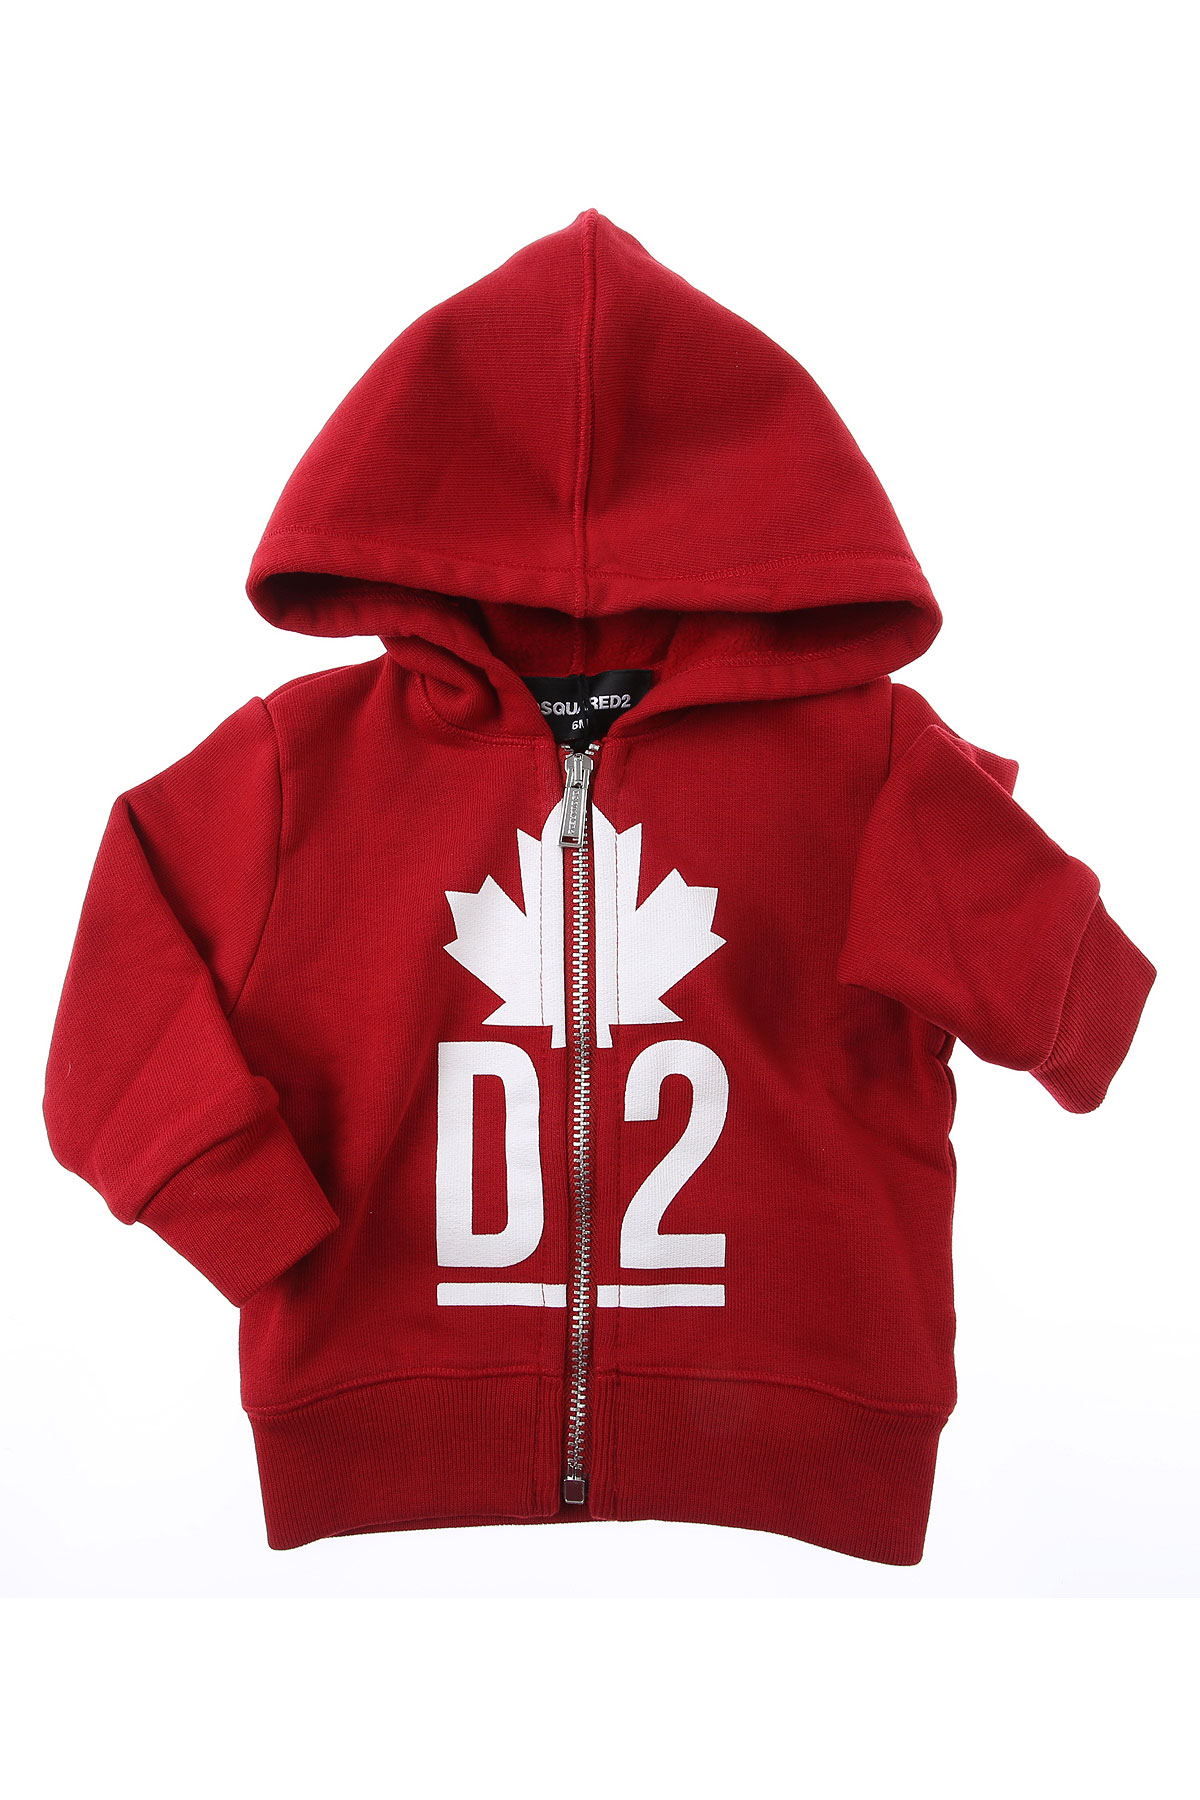 Dsquared2 Baby Sweatshirts & Hoodies for Boys On Sale, Red, Cotton, 2019, 12 M 18M 2Y 3Y 6M 9M